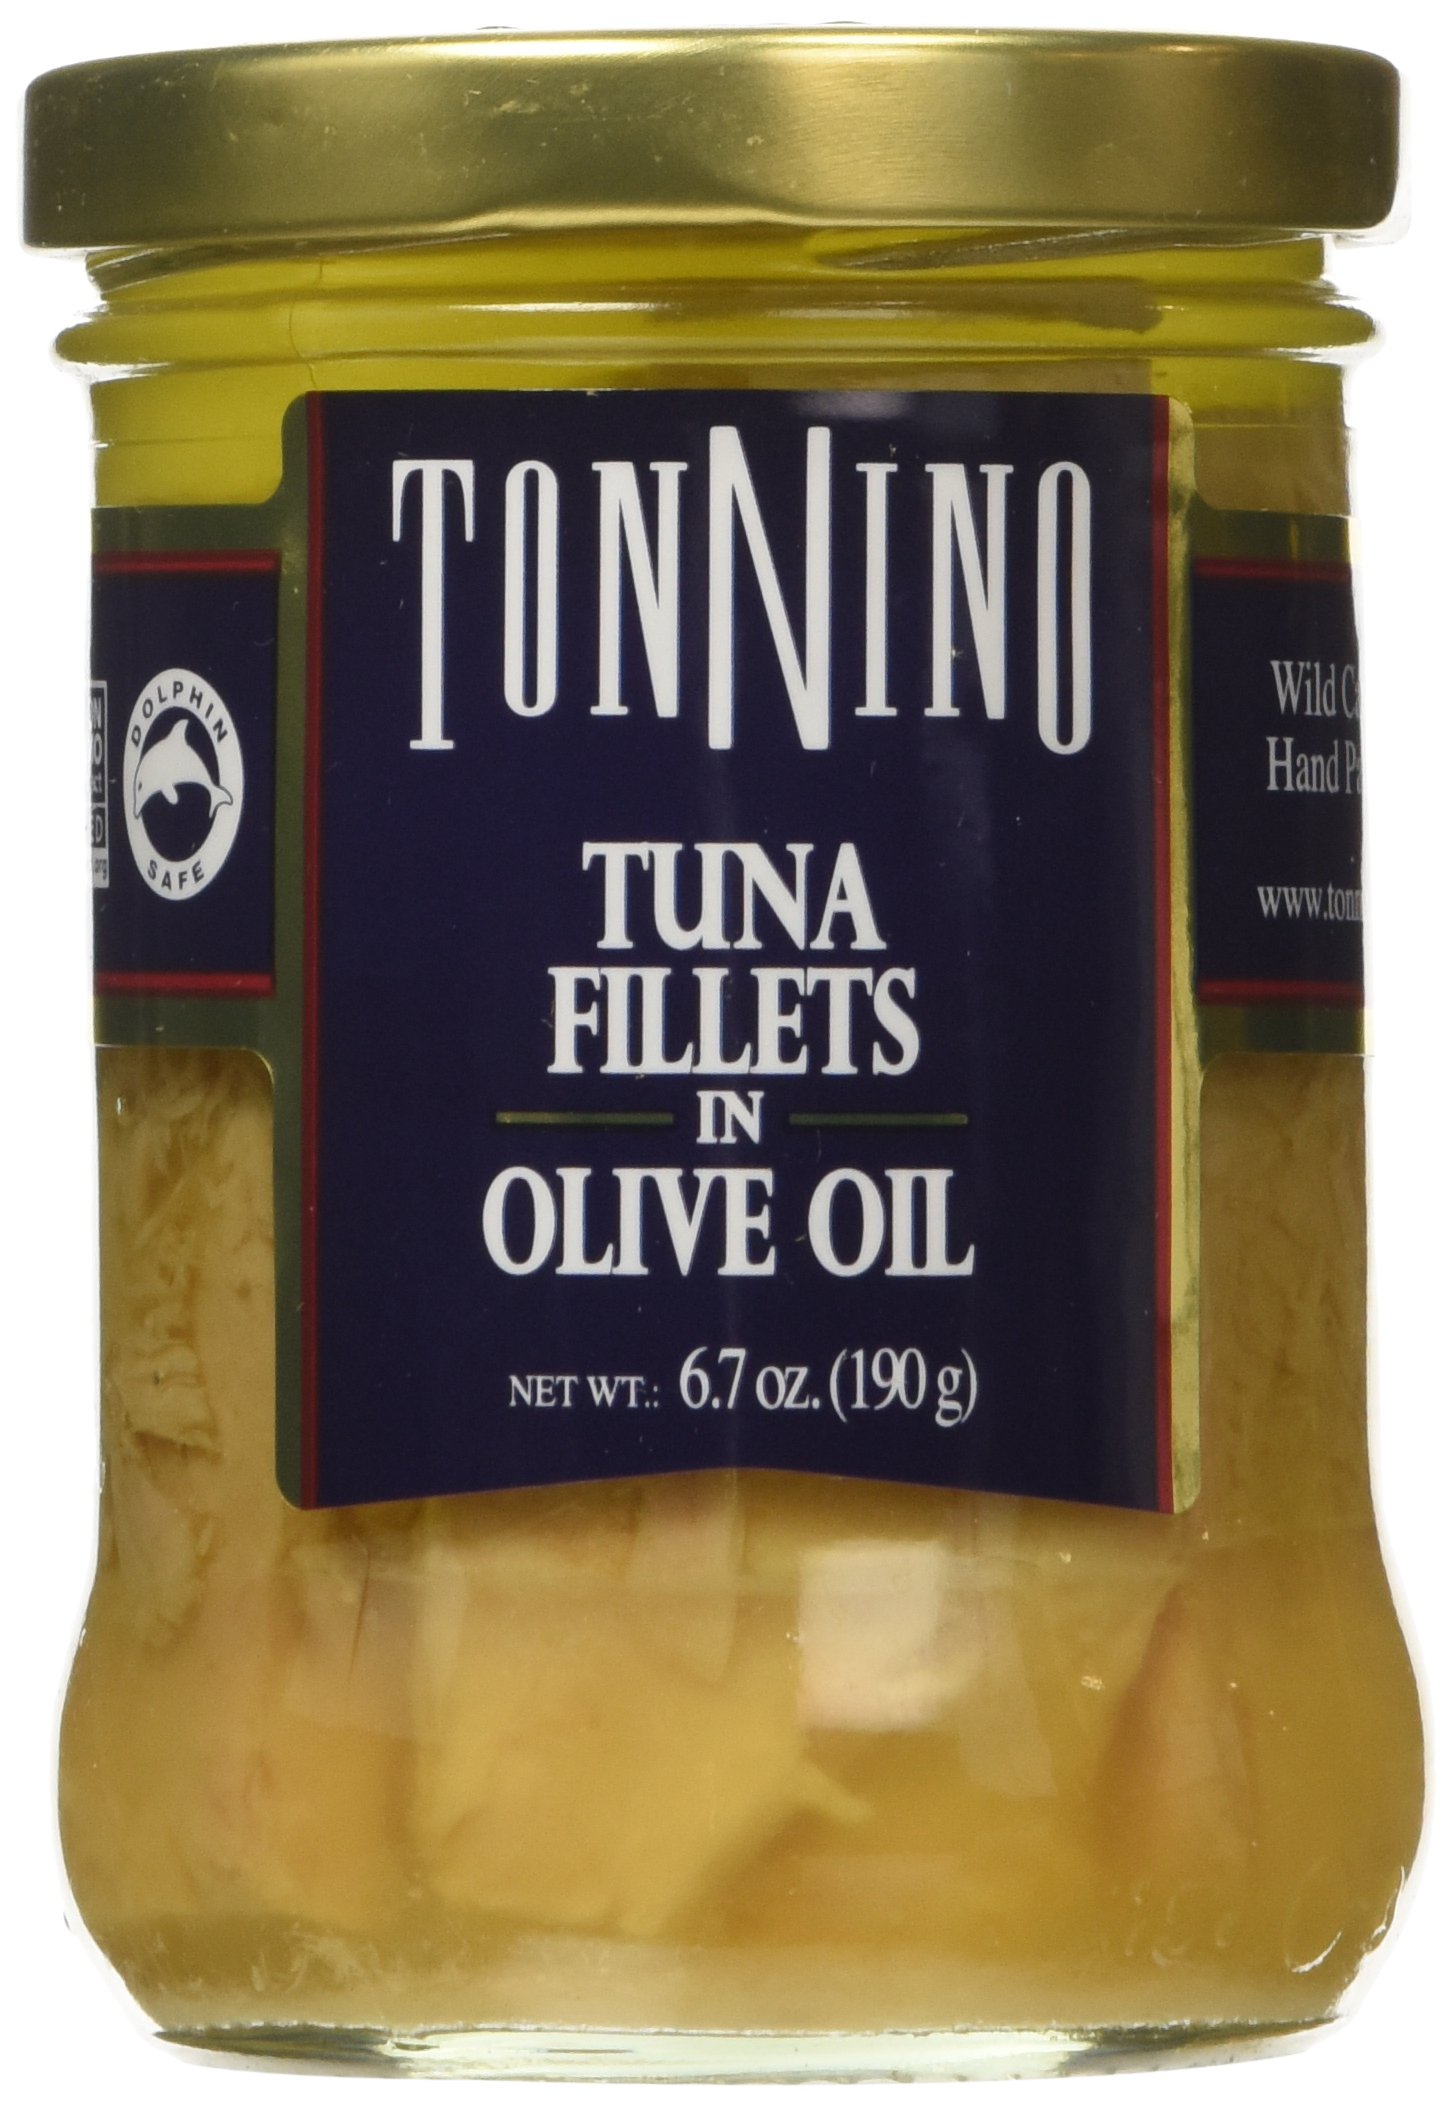 Tonnino Tuna Fillets in Olive Oil (Pack of 6)